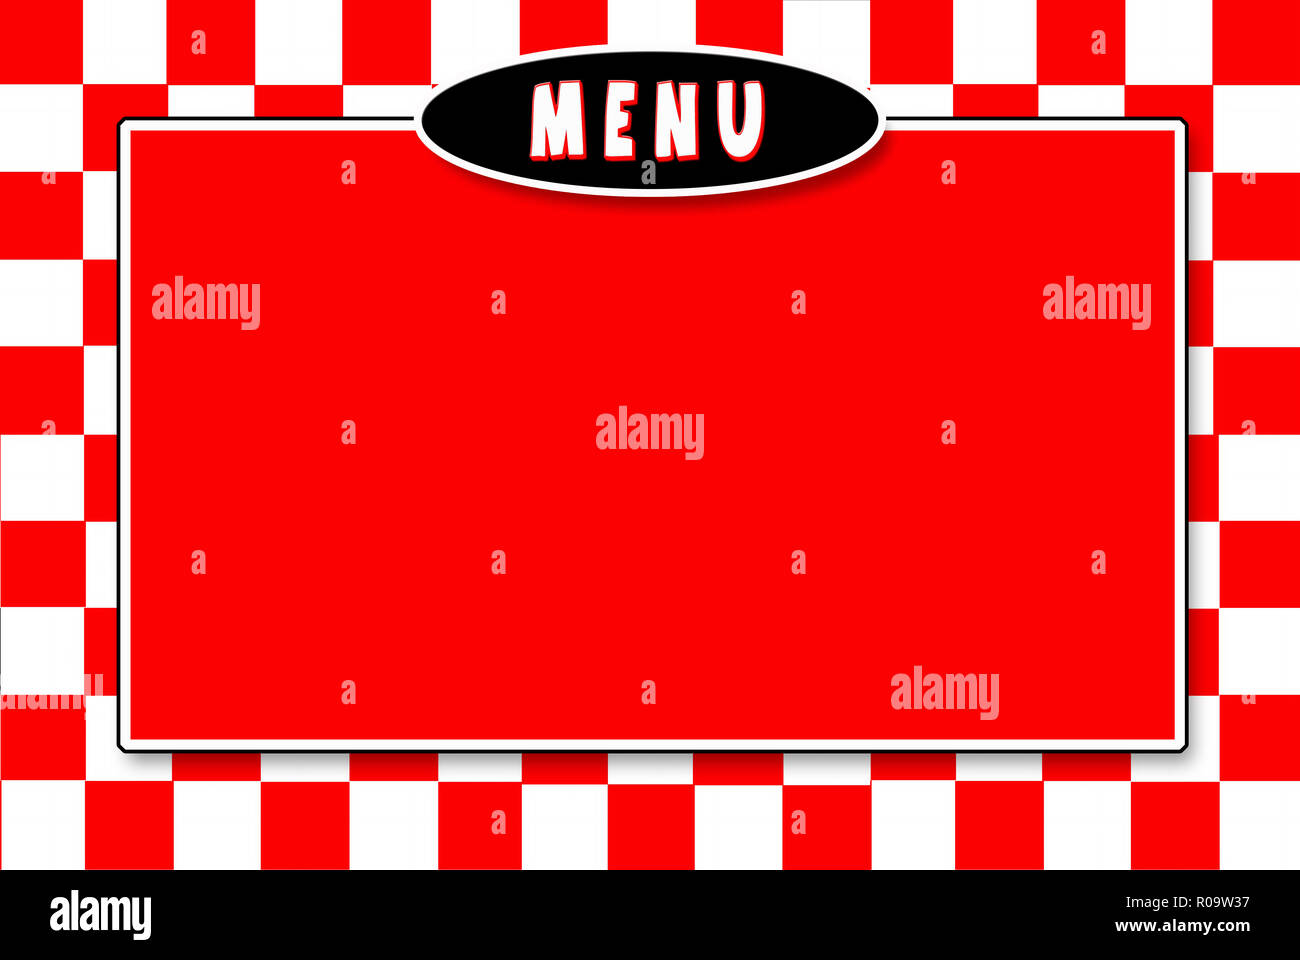 Assortment of Italian red and white checked background ideal for menus and signs.   Text on some, Pizza, Pasta Night, Menu, Italian Menu.  Graphic - Stock Image